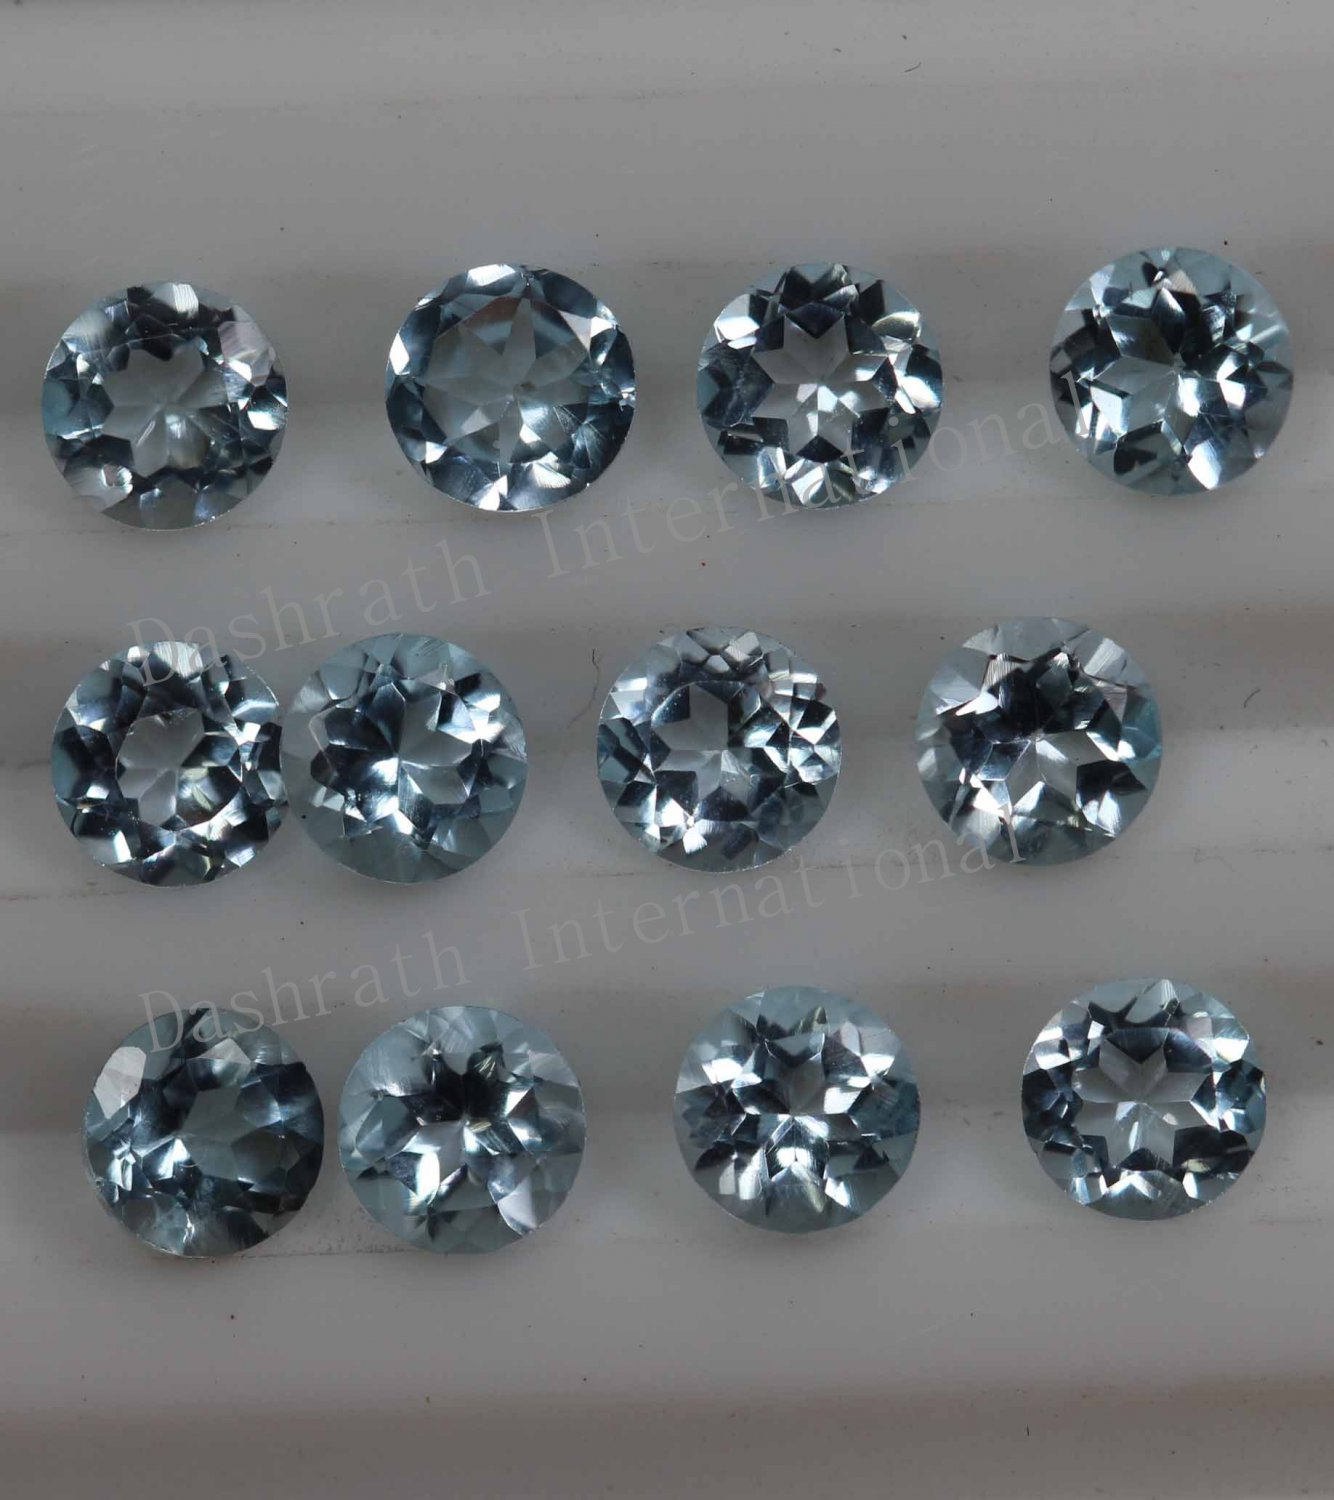 5mmNatural Sky Blue Topaz Faceted Cut Round 100 Pieces Lot Blue Color  Top Quality Loose Gemstone